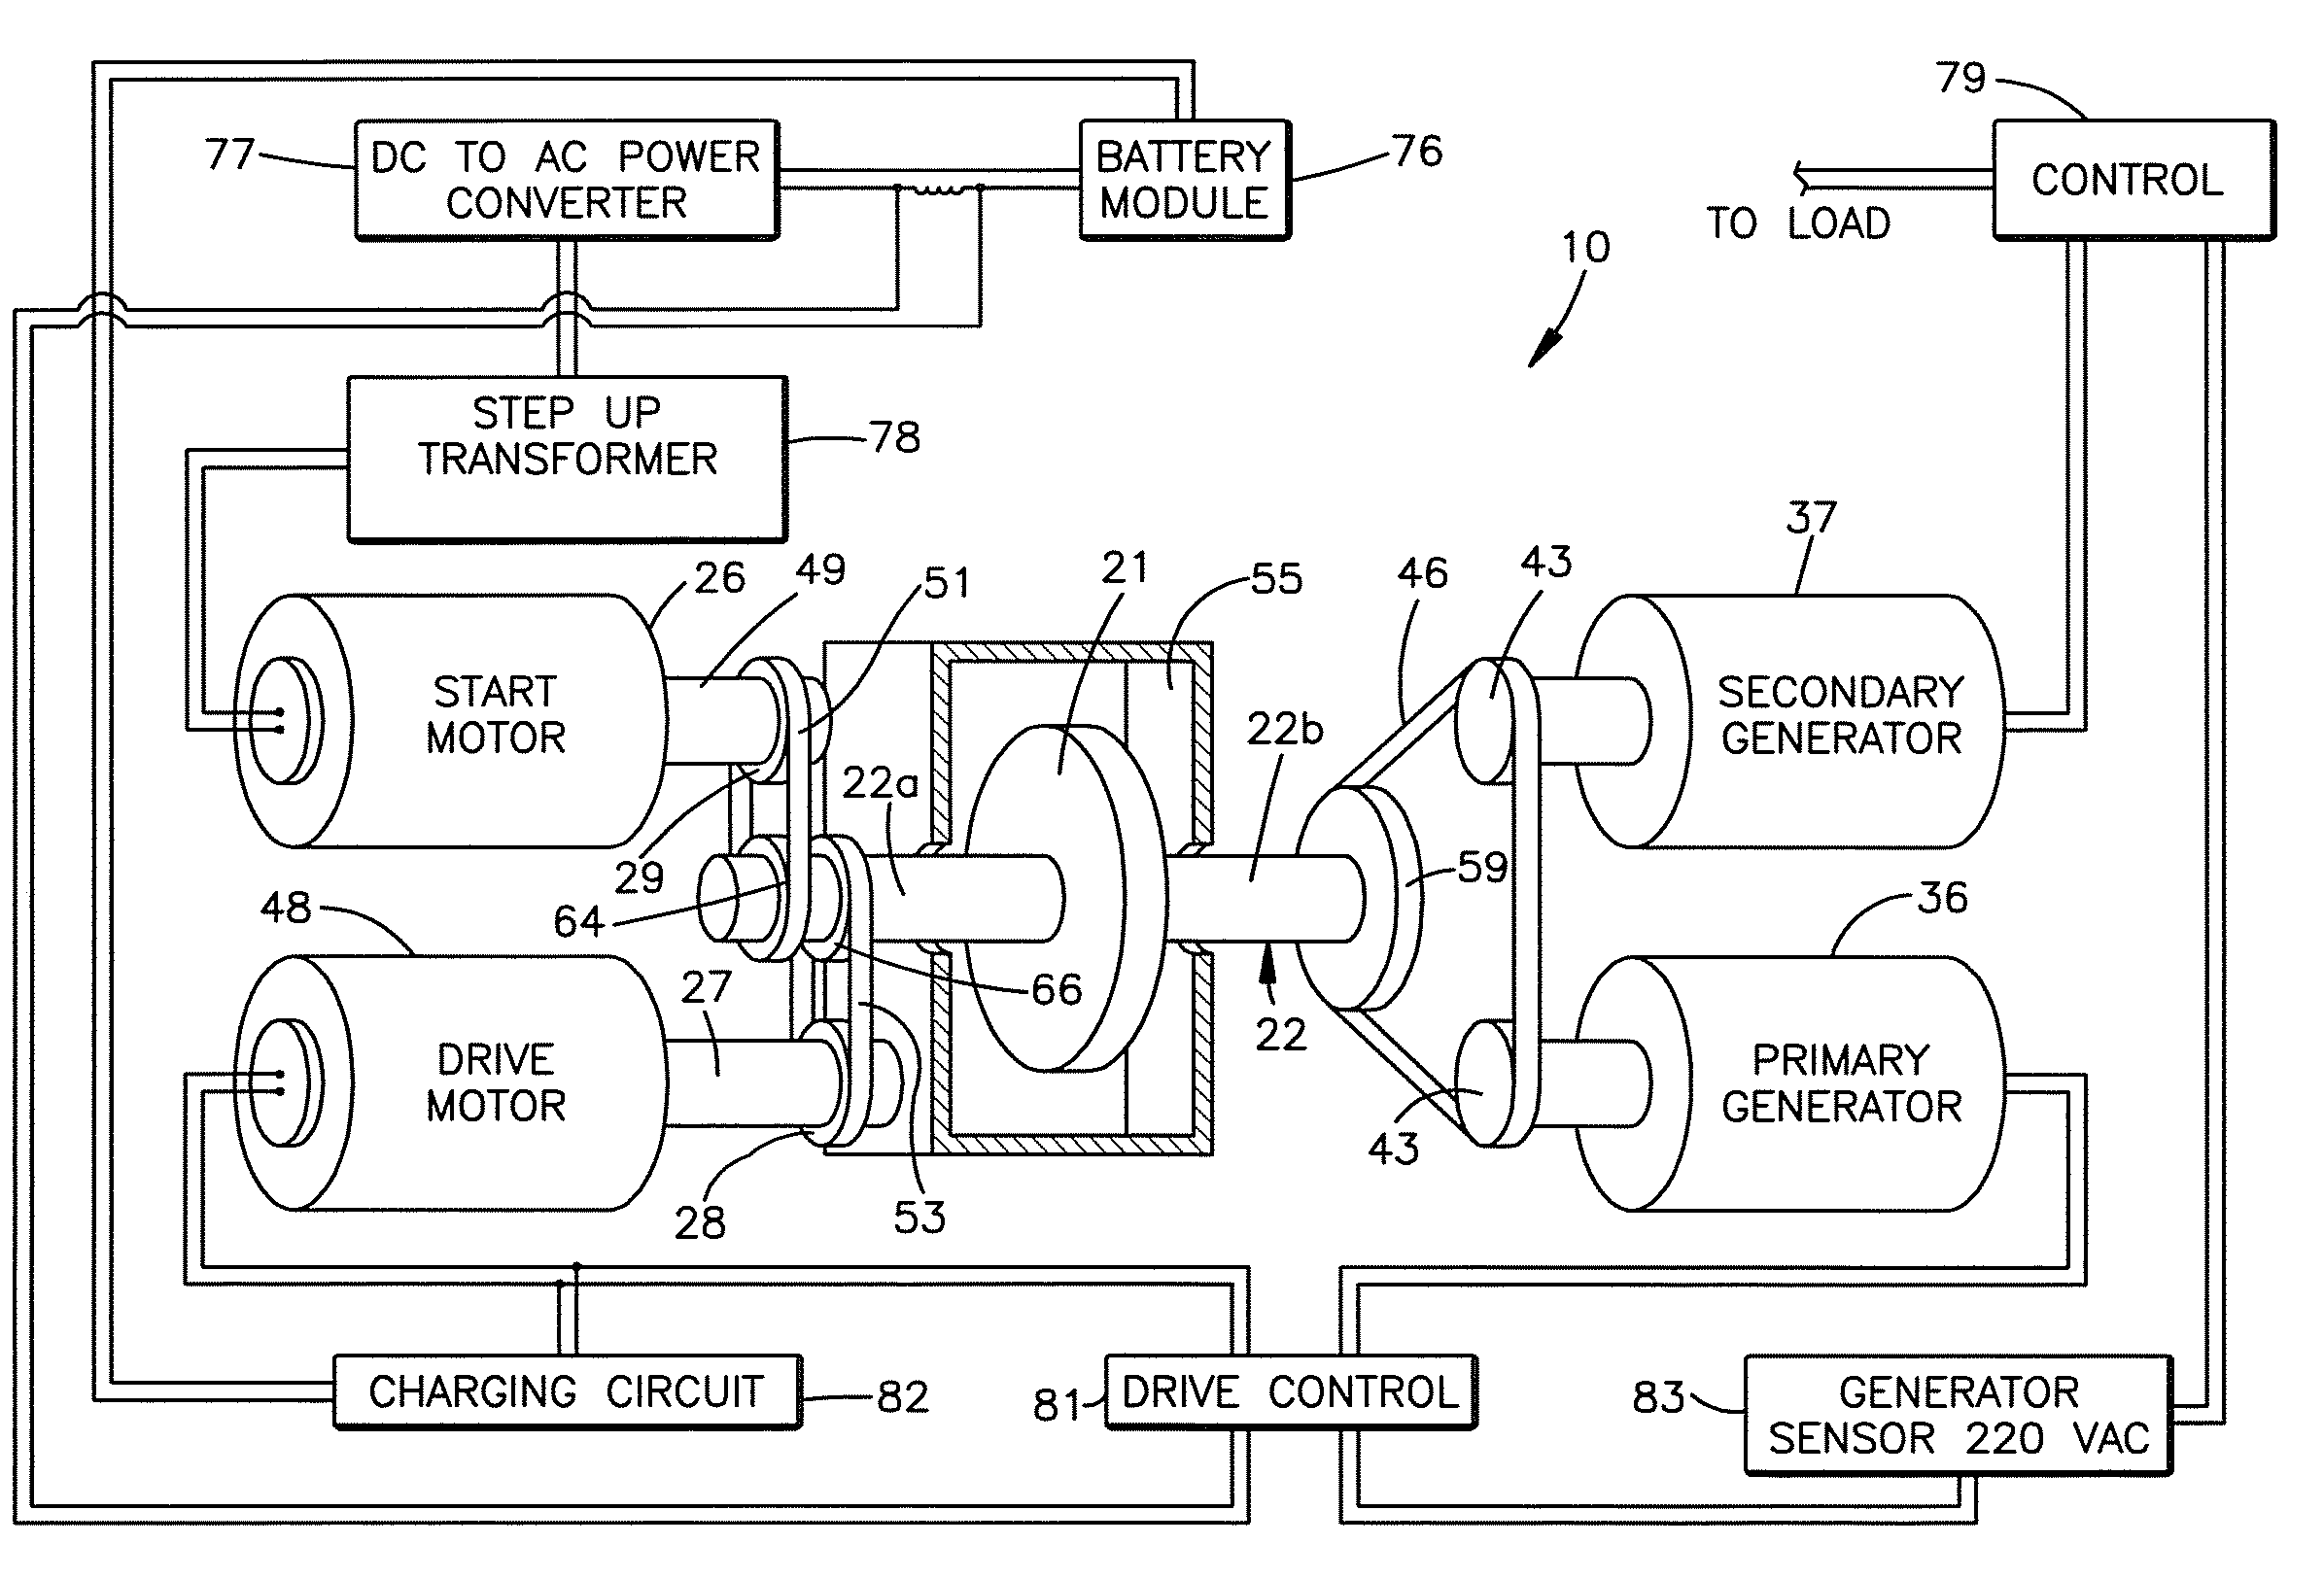 Patent Us20080143302 Electrical Power Generation System Google Generator Stepper Electronic Circuits Schematics Diagram Free Drawing